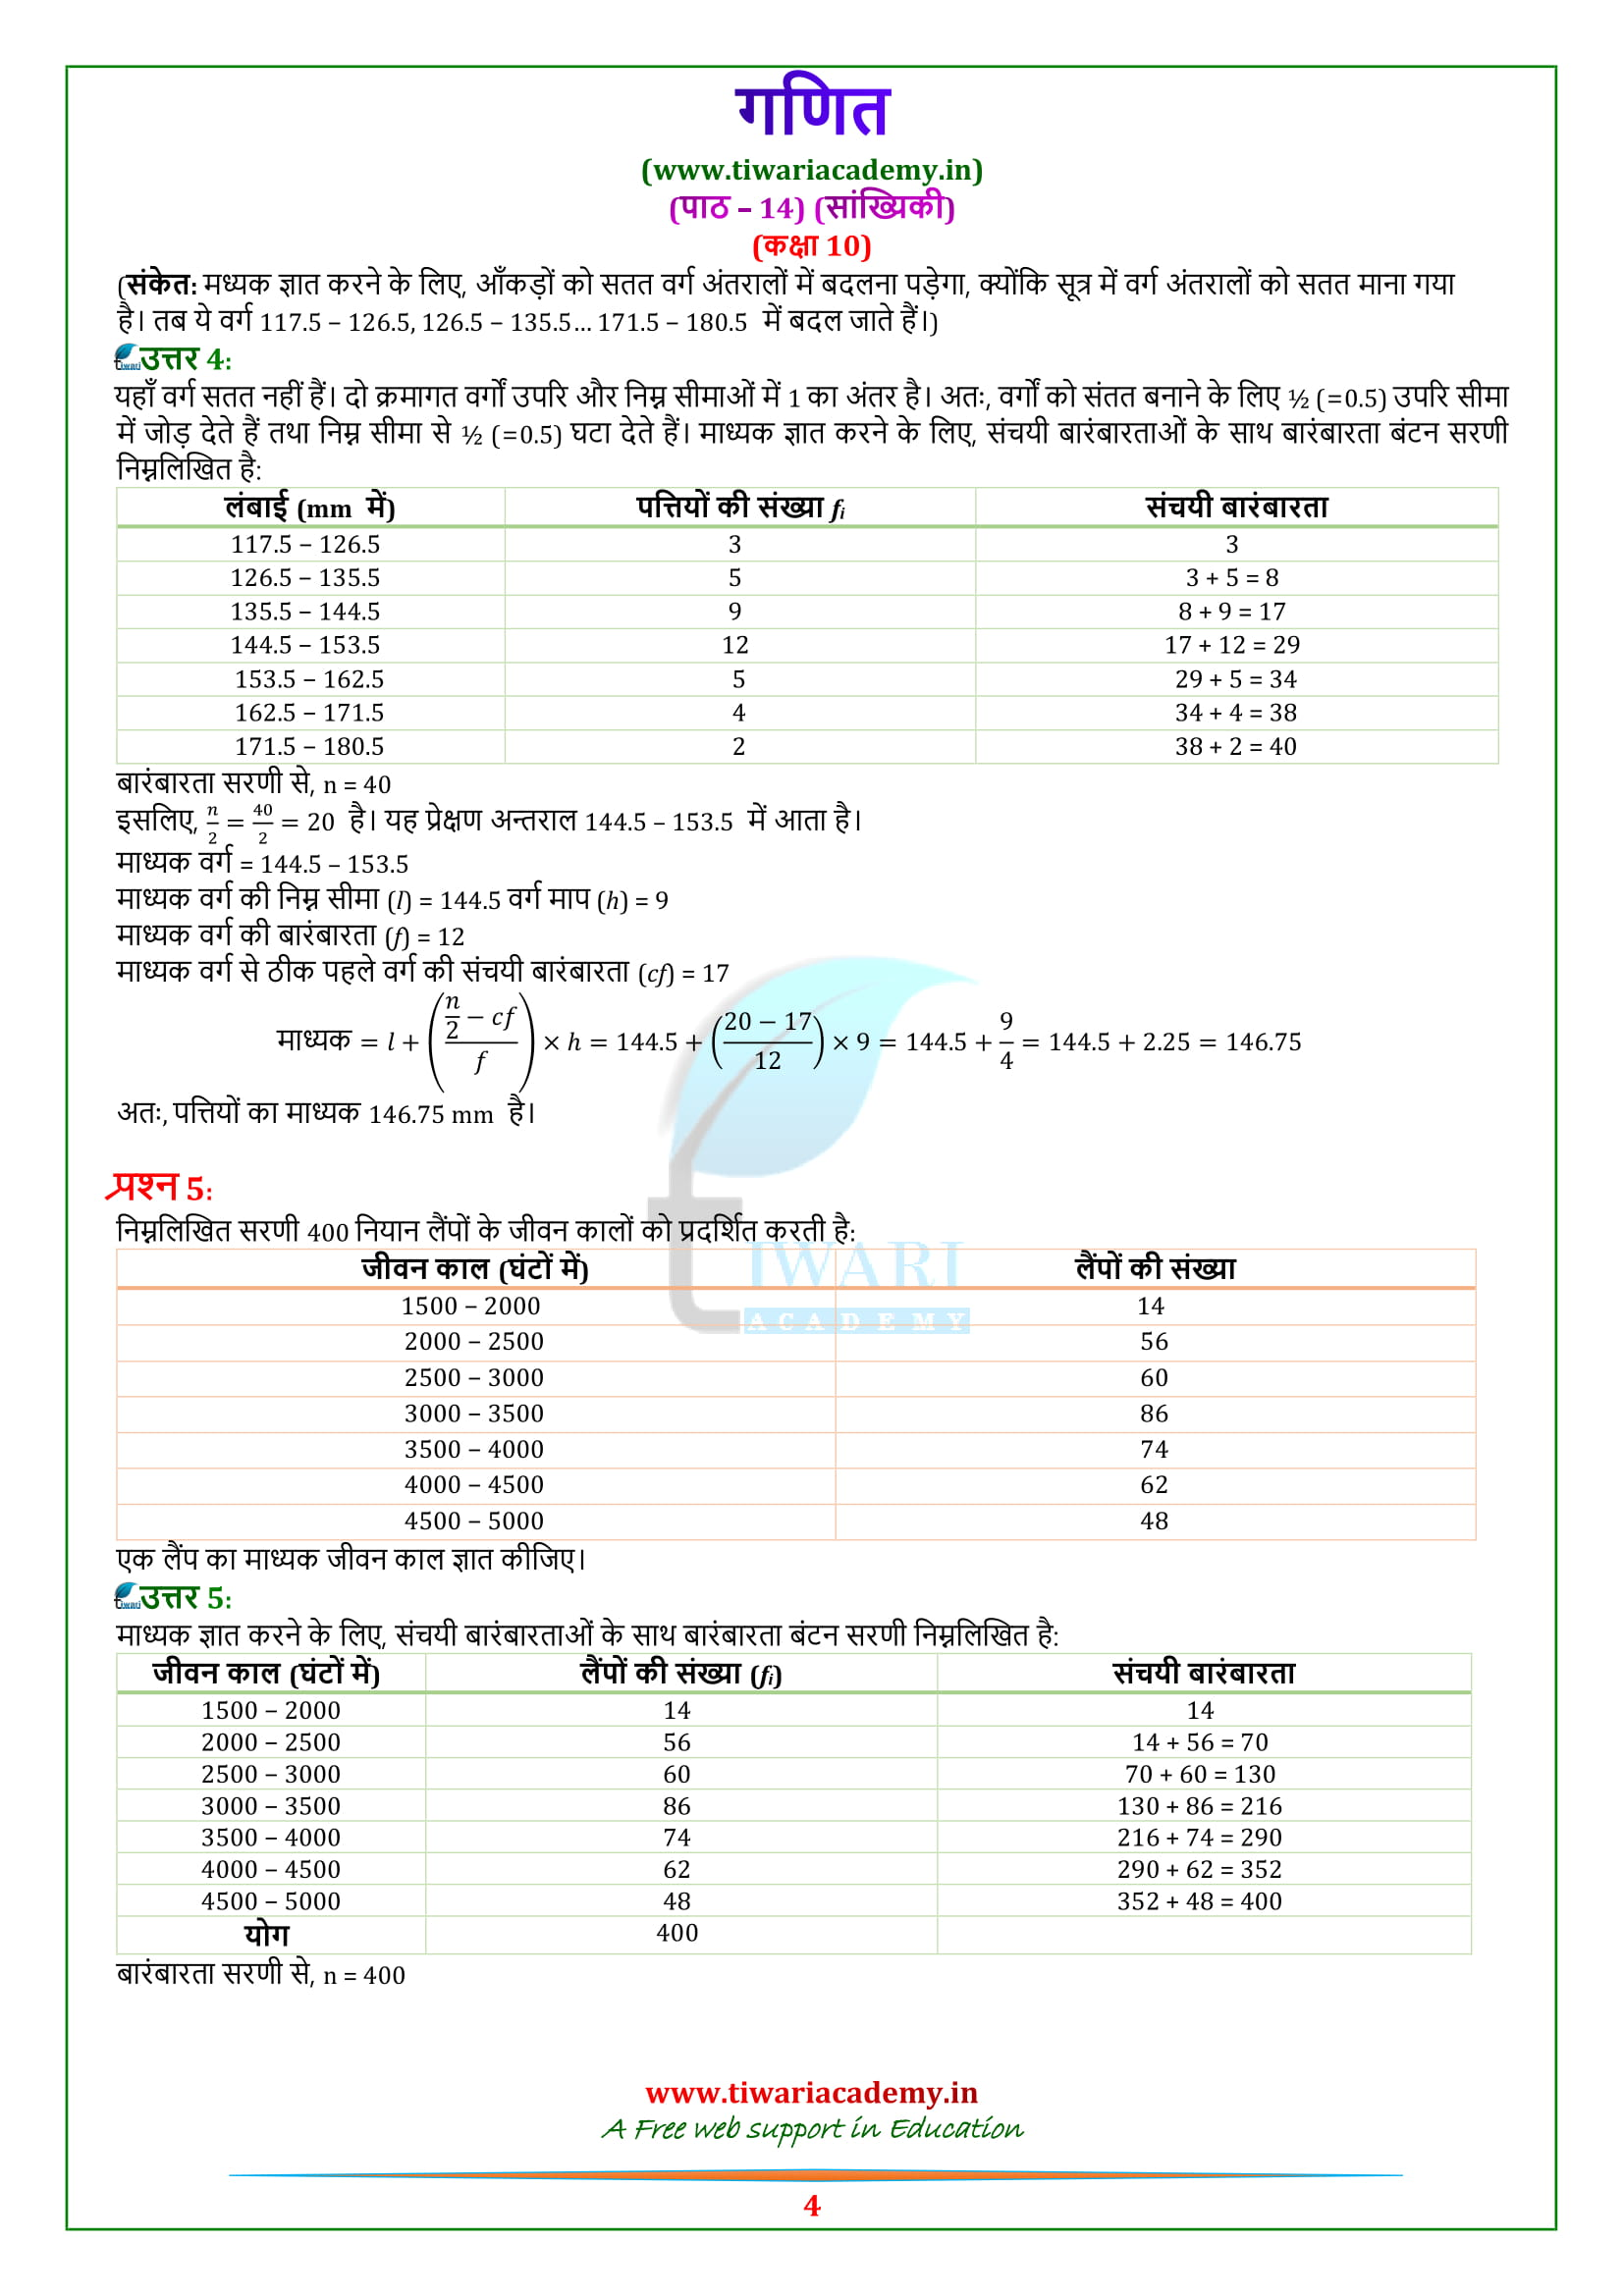 Class 10 Maths Exercise 14.3 Solutions for cbse, mp board and up board students